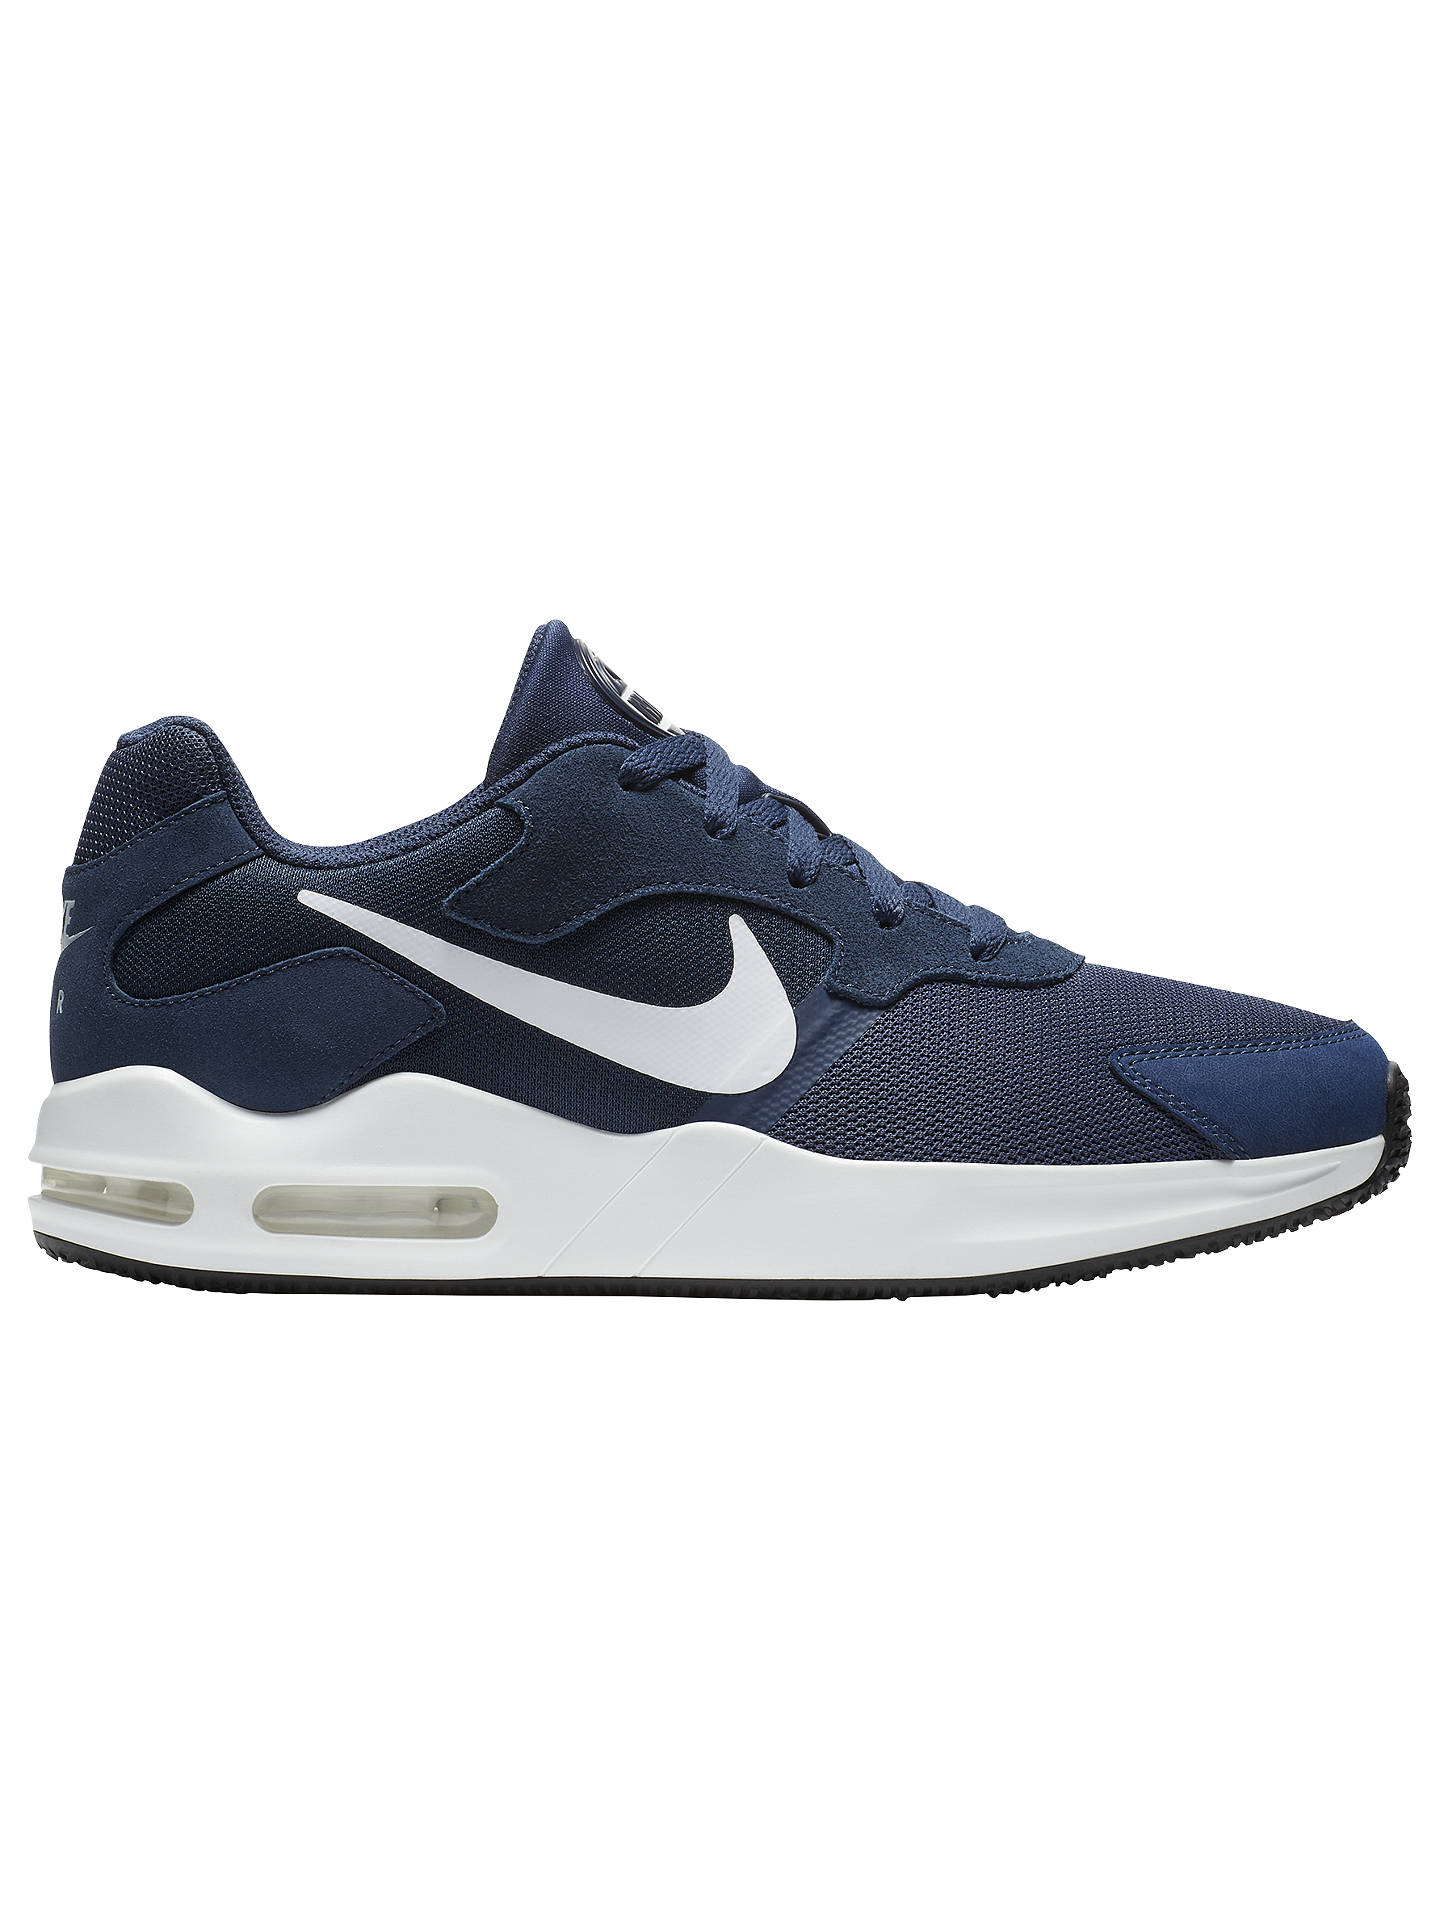 Nike Air Max Guile Men's Trainers, BlueWhite at John Lewis